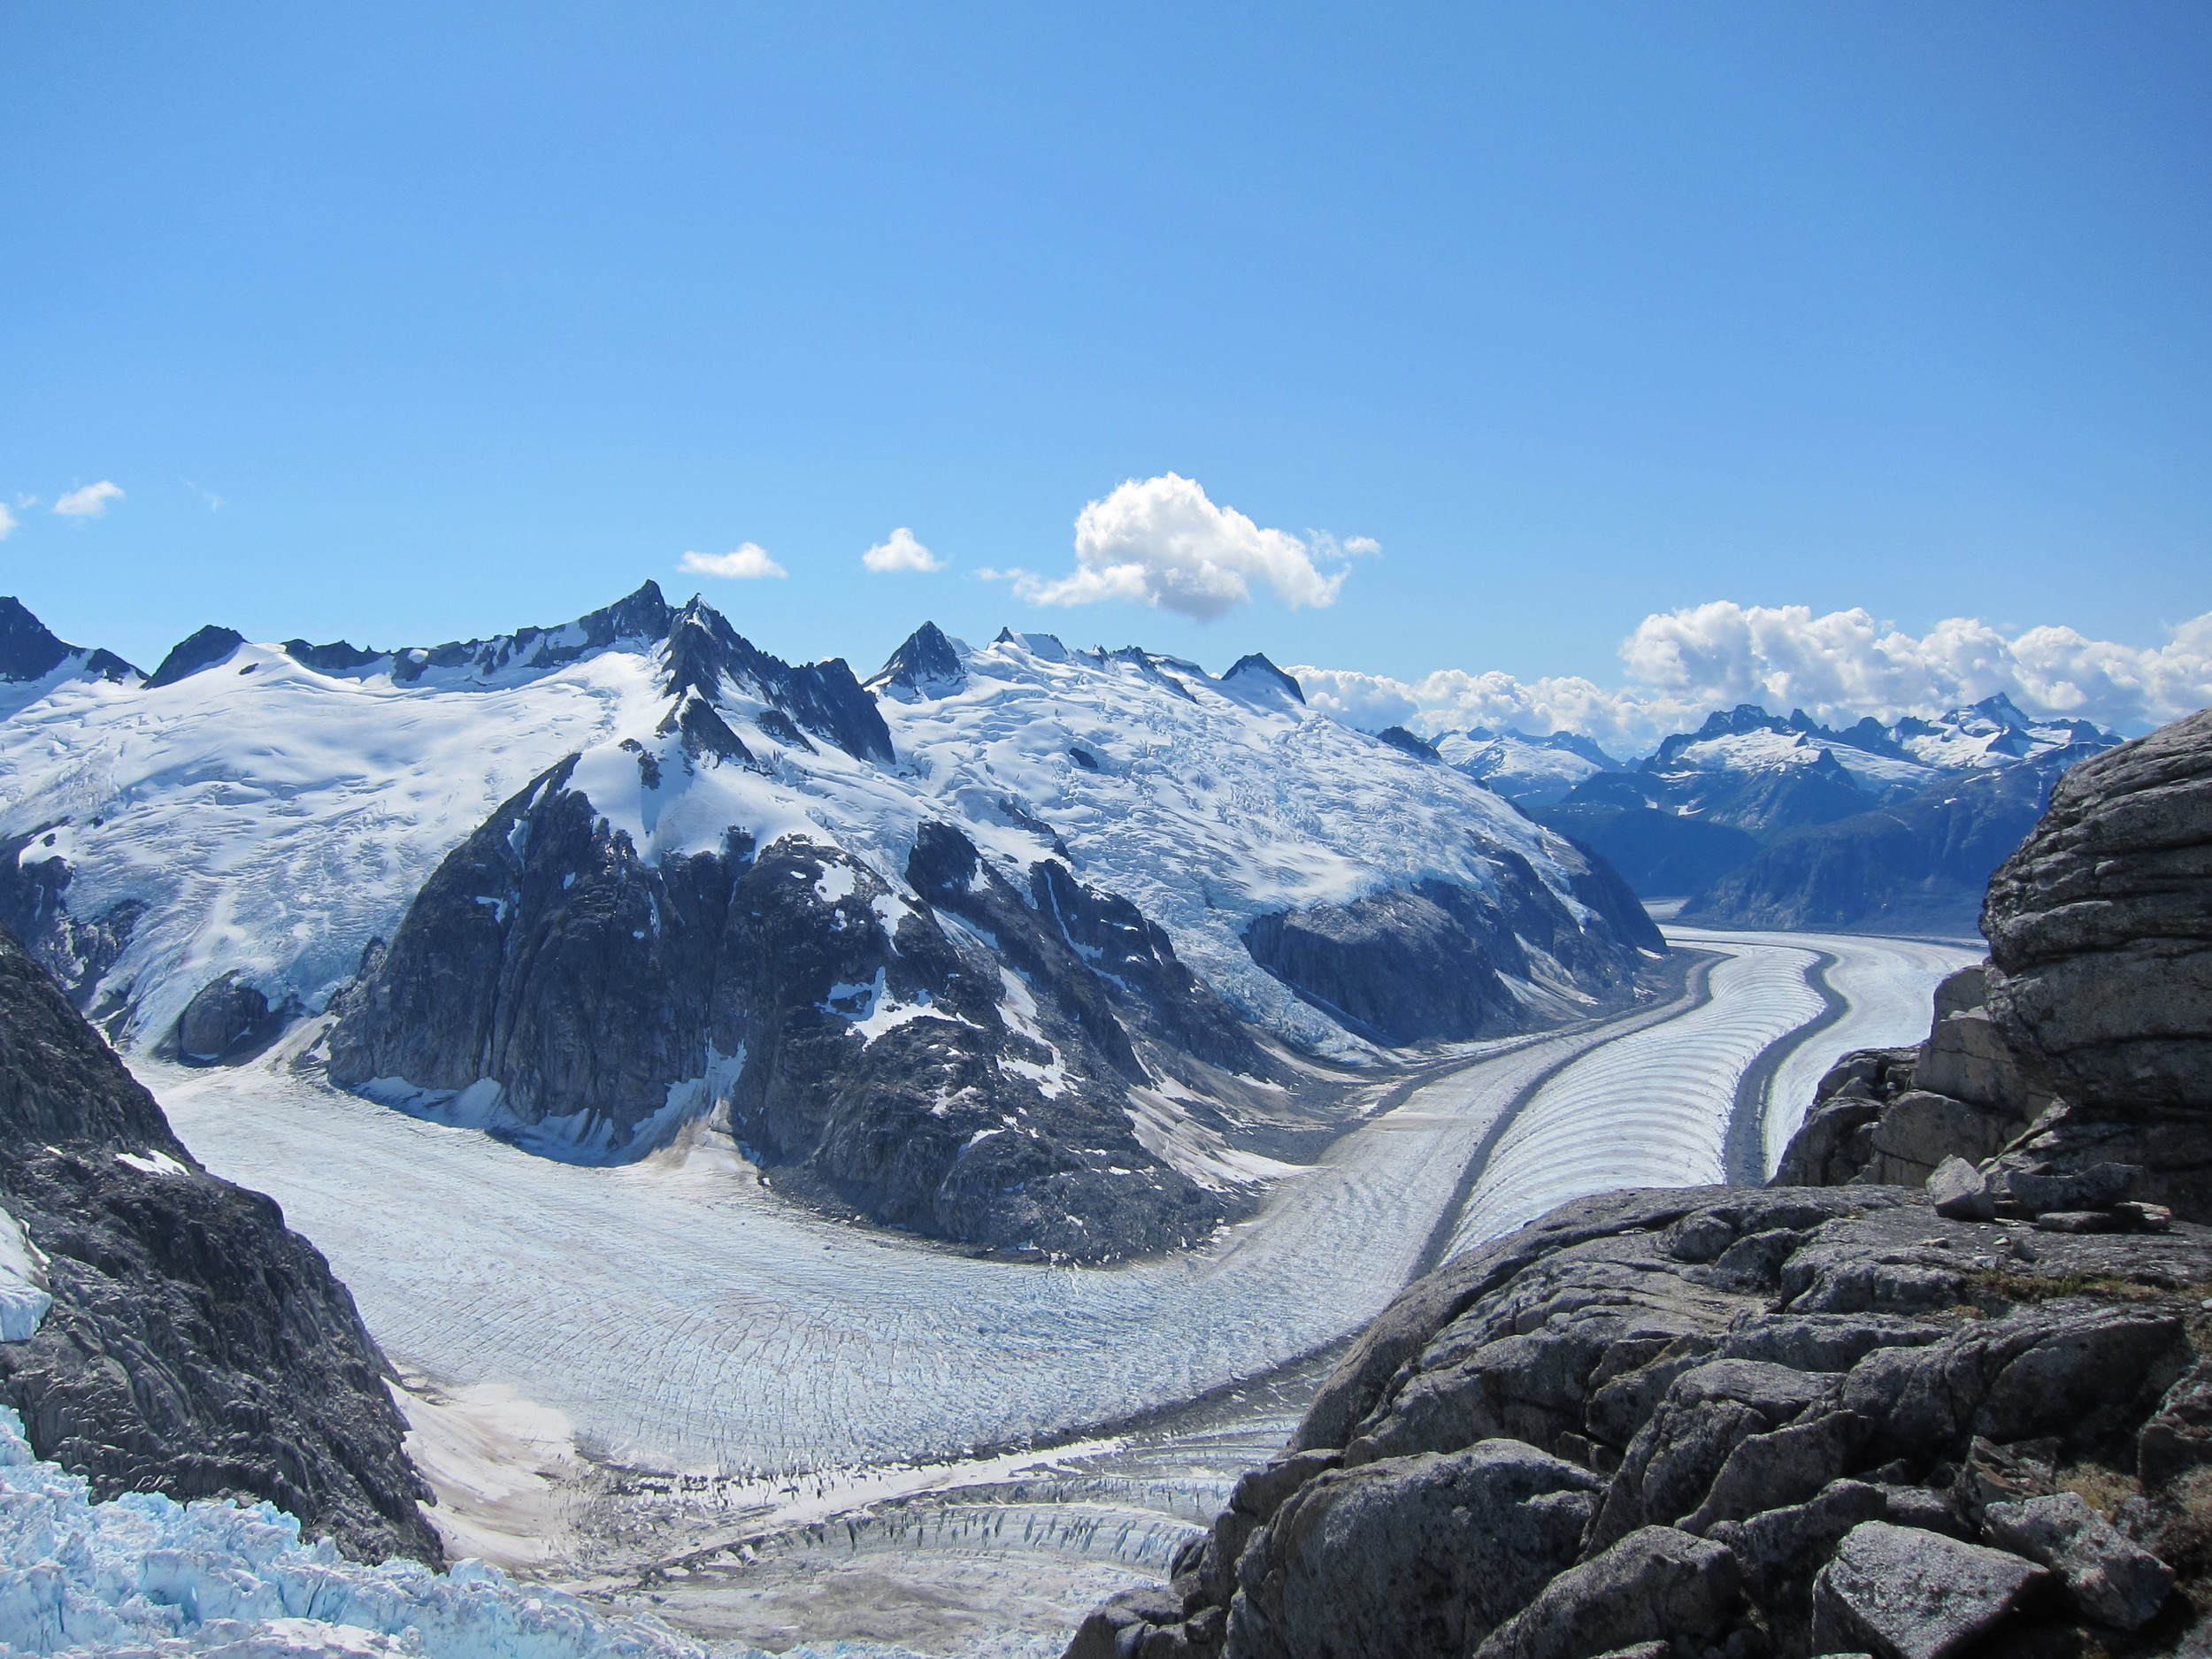 The view from Camp 18: the Vaughan Lewis Icefall and the Gilkey Trench